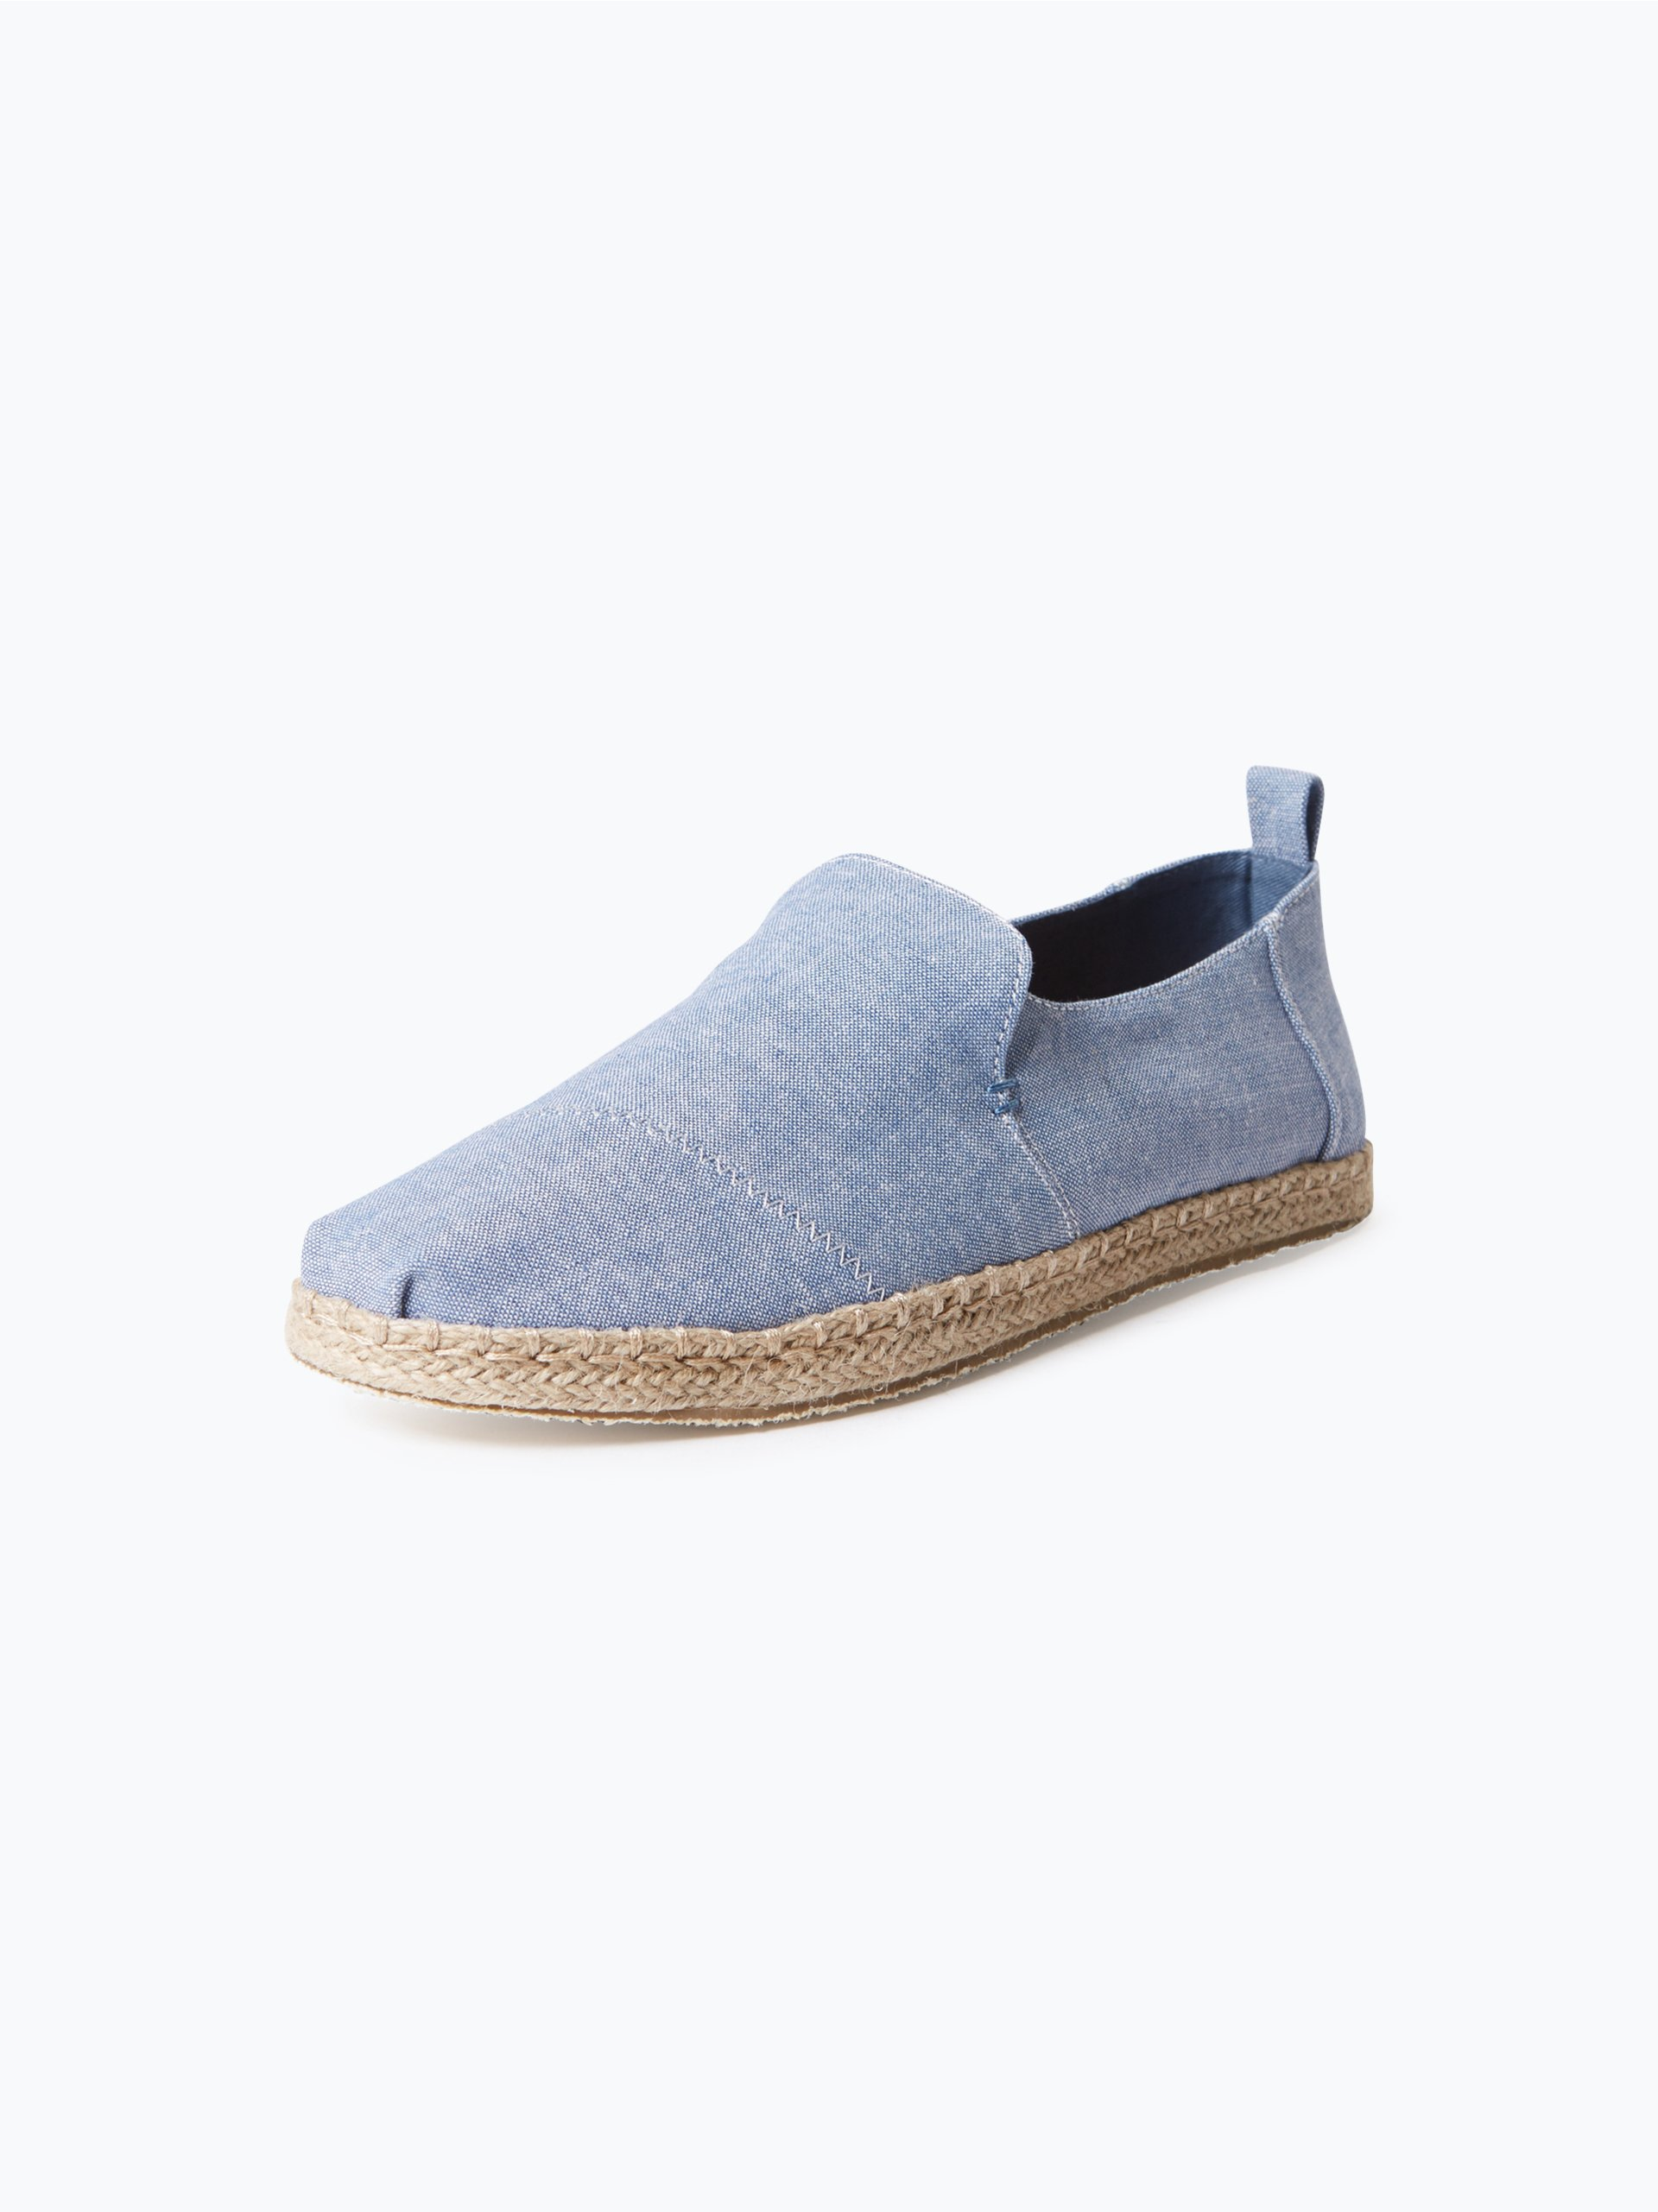 toms herren espadrilles blau uni online kaufen vangraaf com. Black Bedroom Furniture Sets. Home Design Ideas